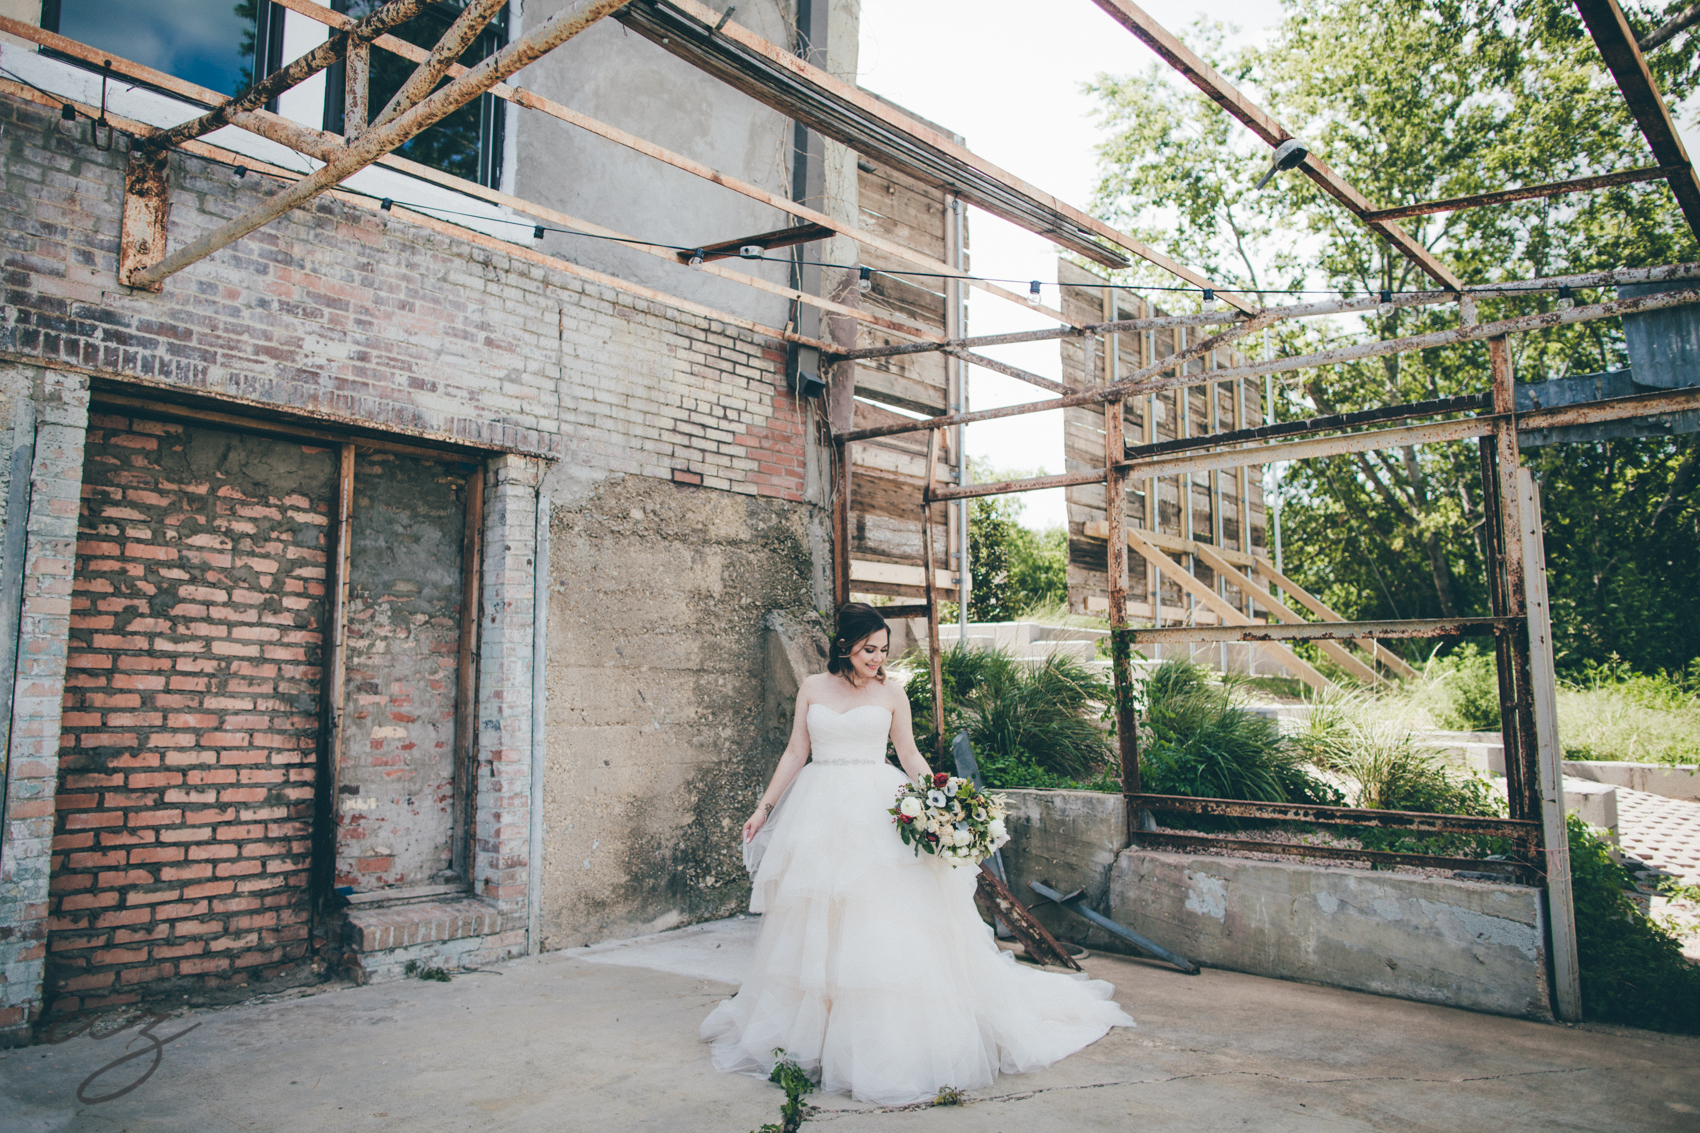 brik-venue-bridal-session-photography-7